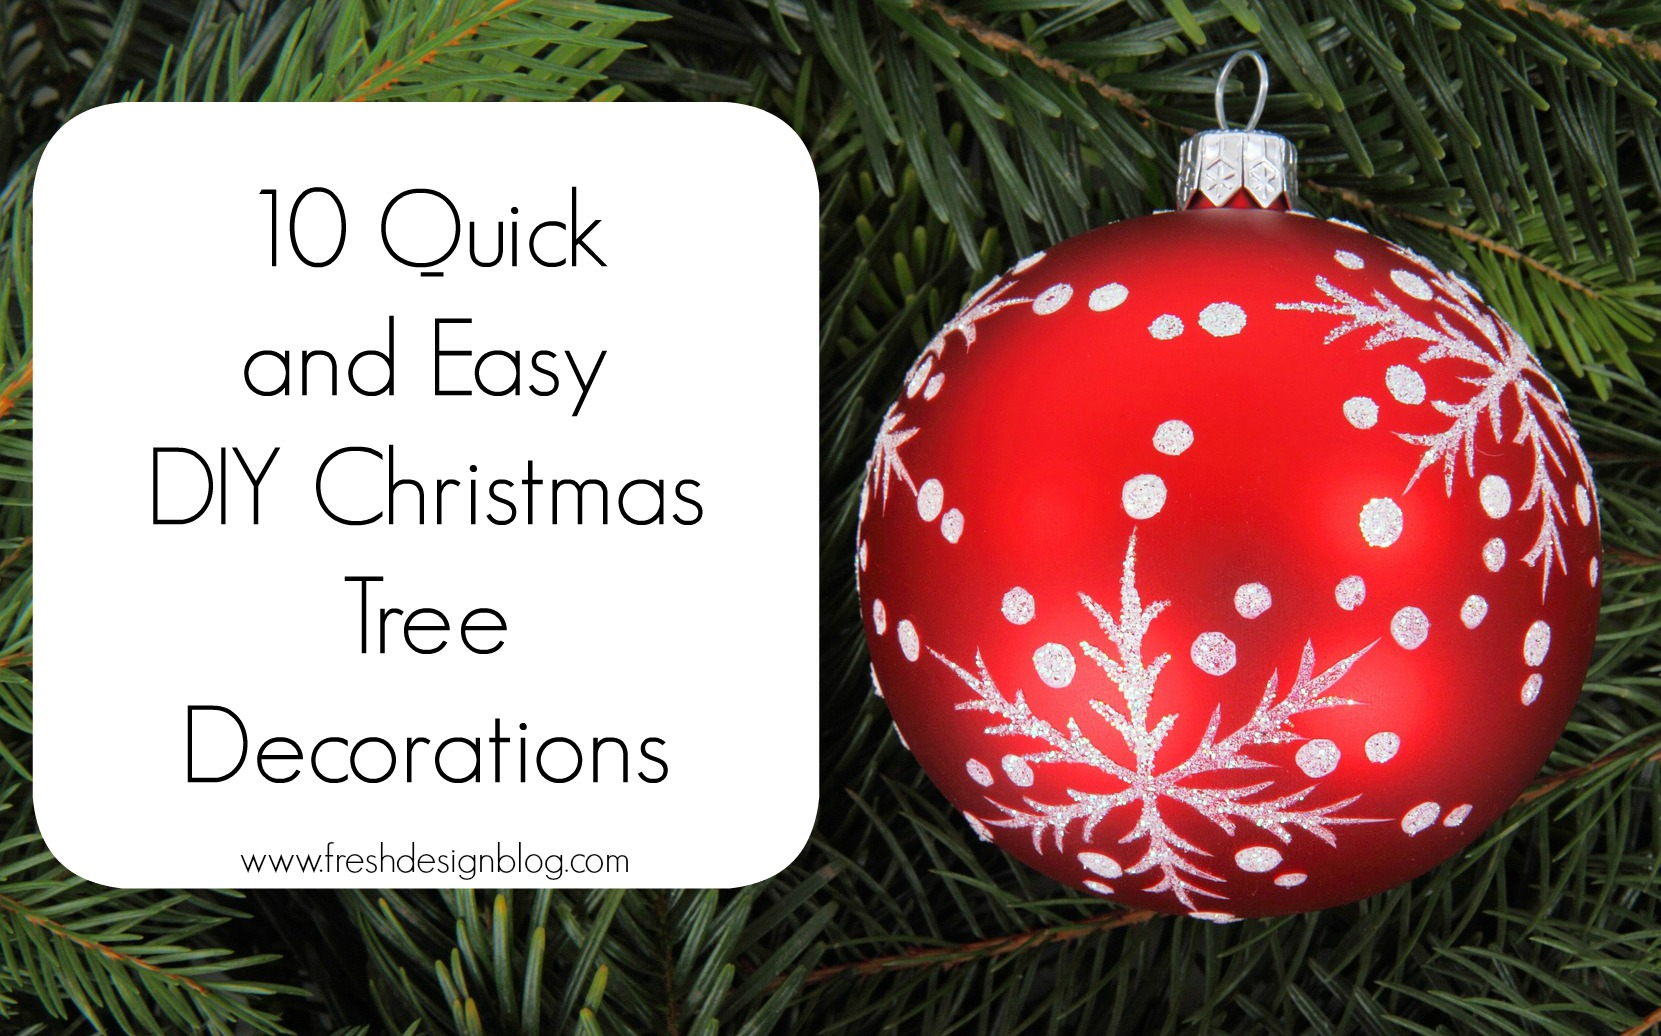 10 quick and easy diy christmas tree decorations fresh for Christmas decorations easy to make at home